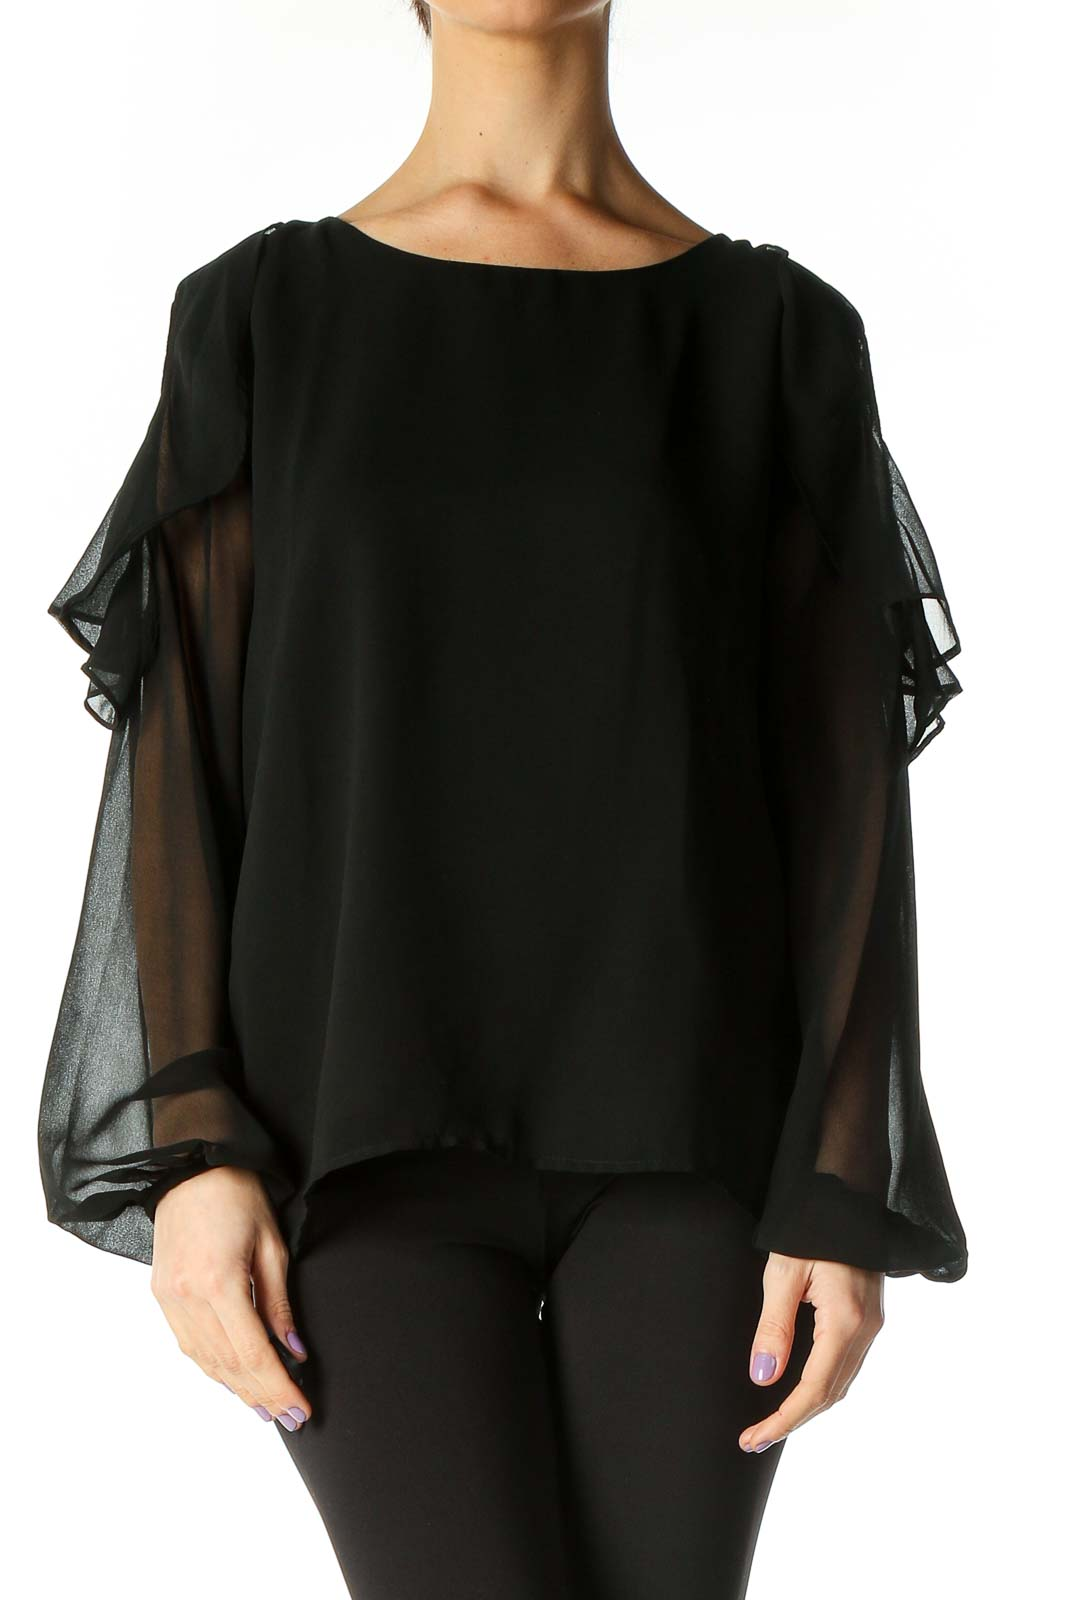 Black Solid Retro Blouse Front